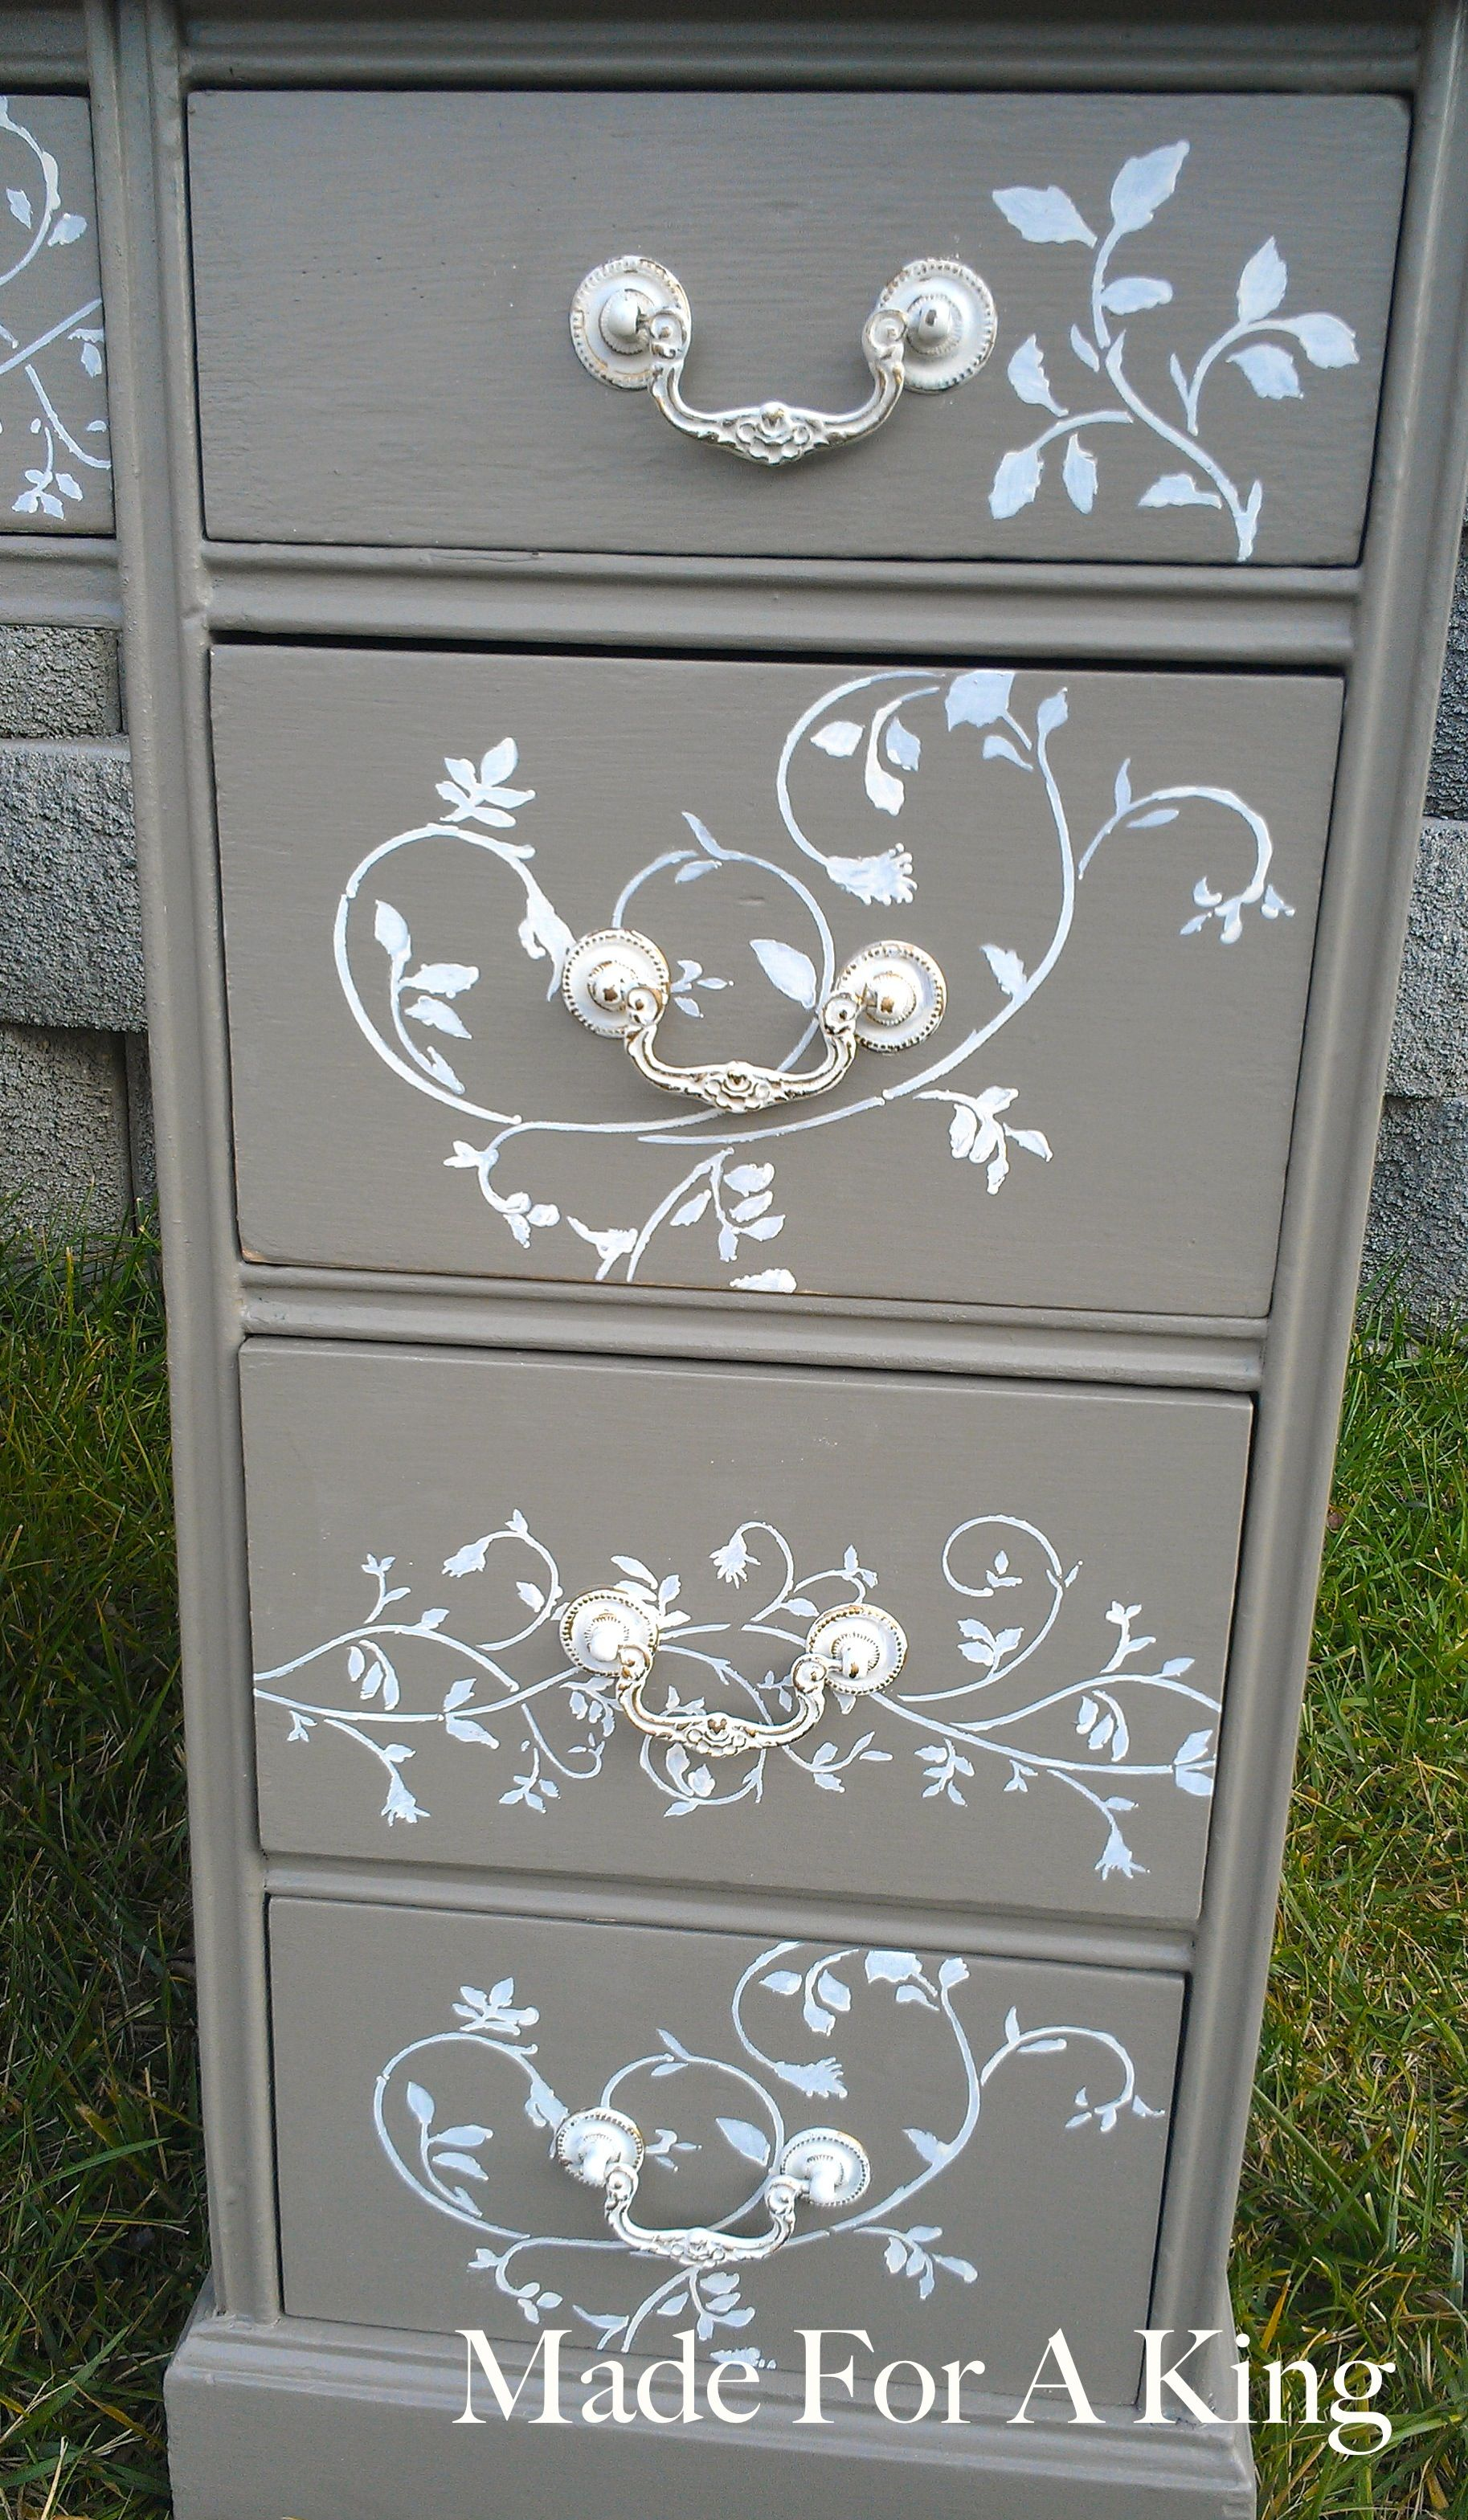 Diy Painted Stencil Bathroom Floor: Stenciled Drawer Fronts! - Made For A King